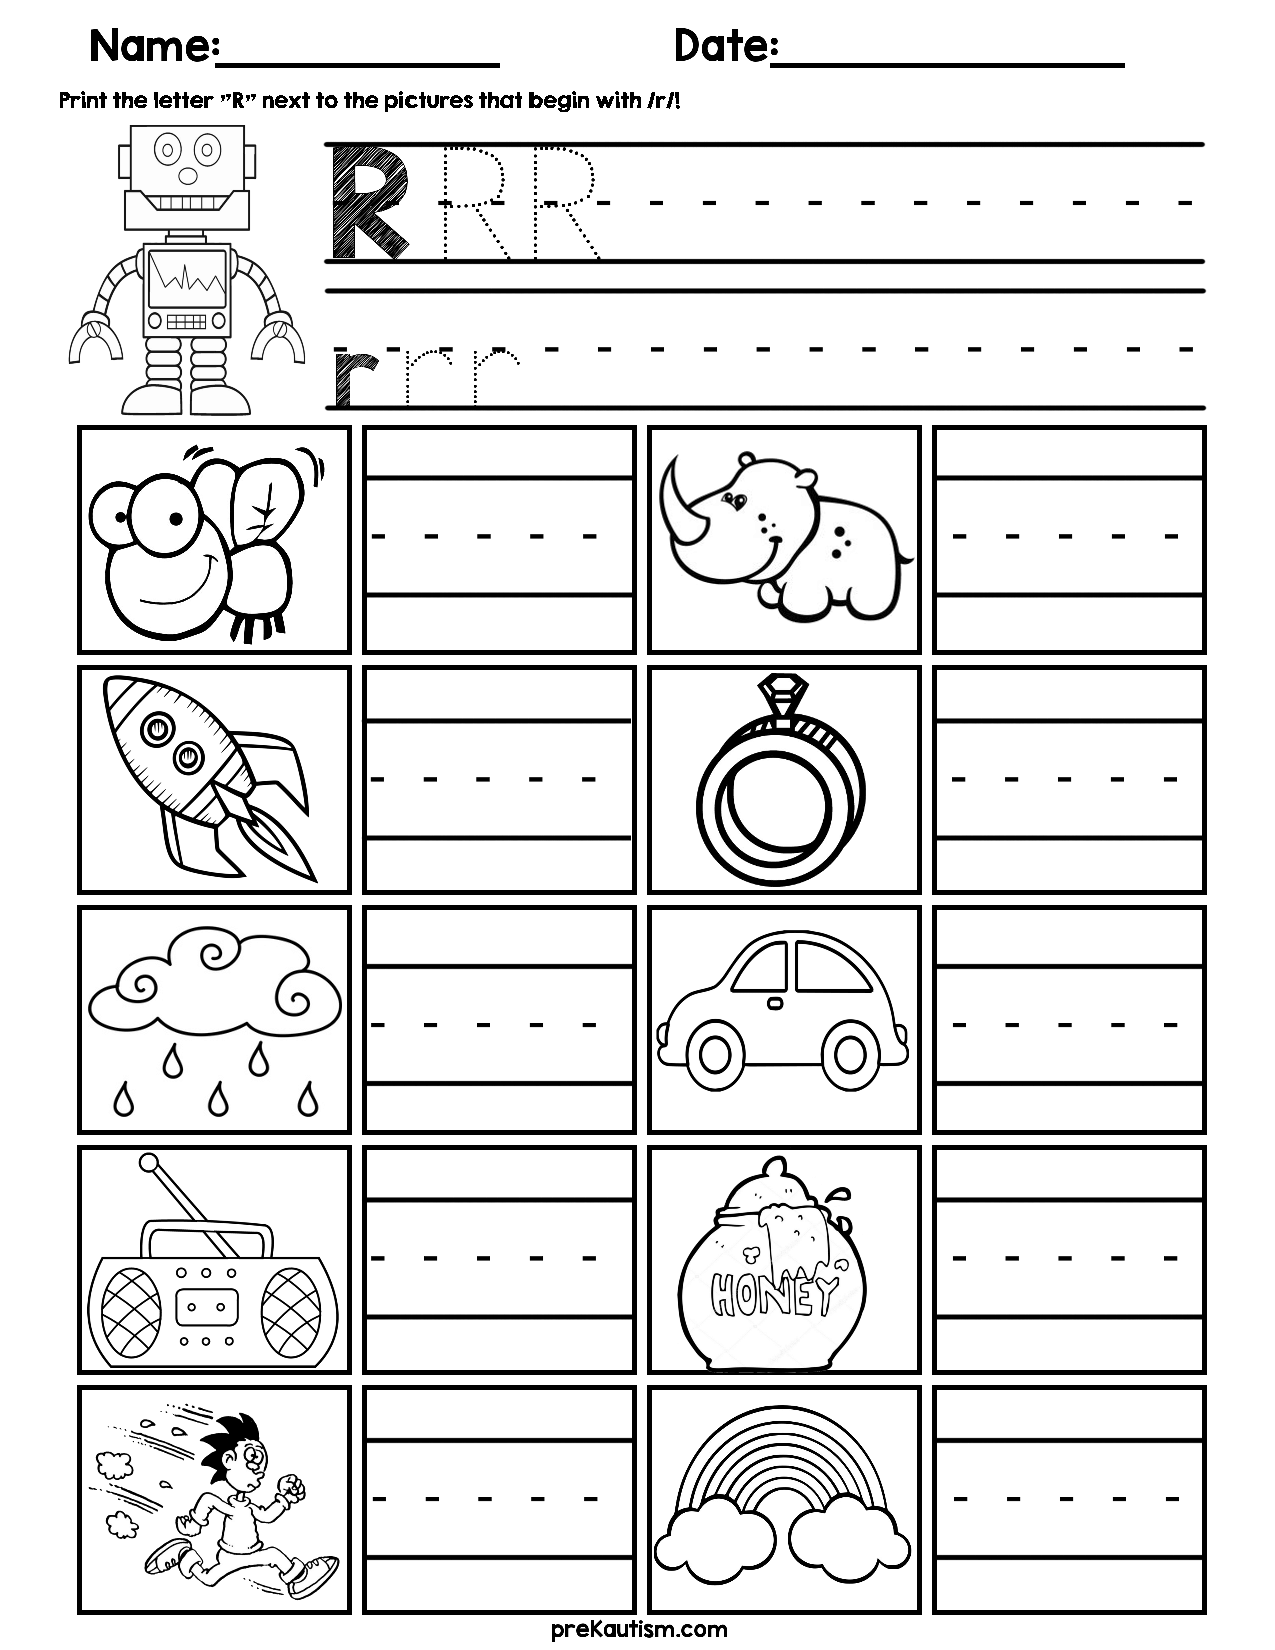 Initial Consonant Practice Worksheets Worksheets